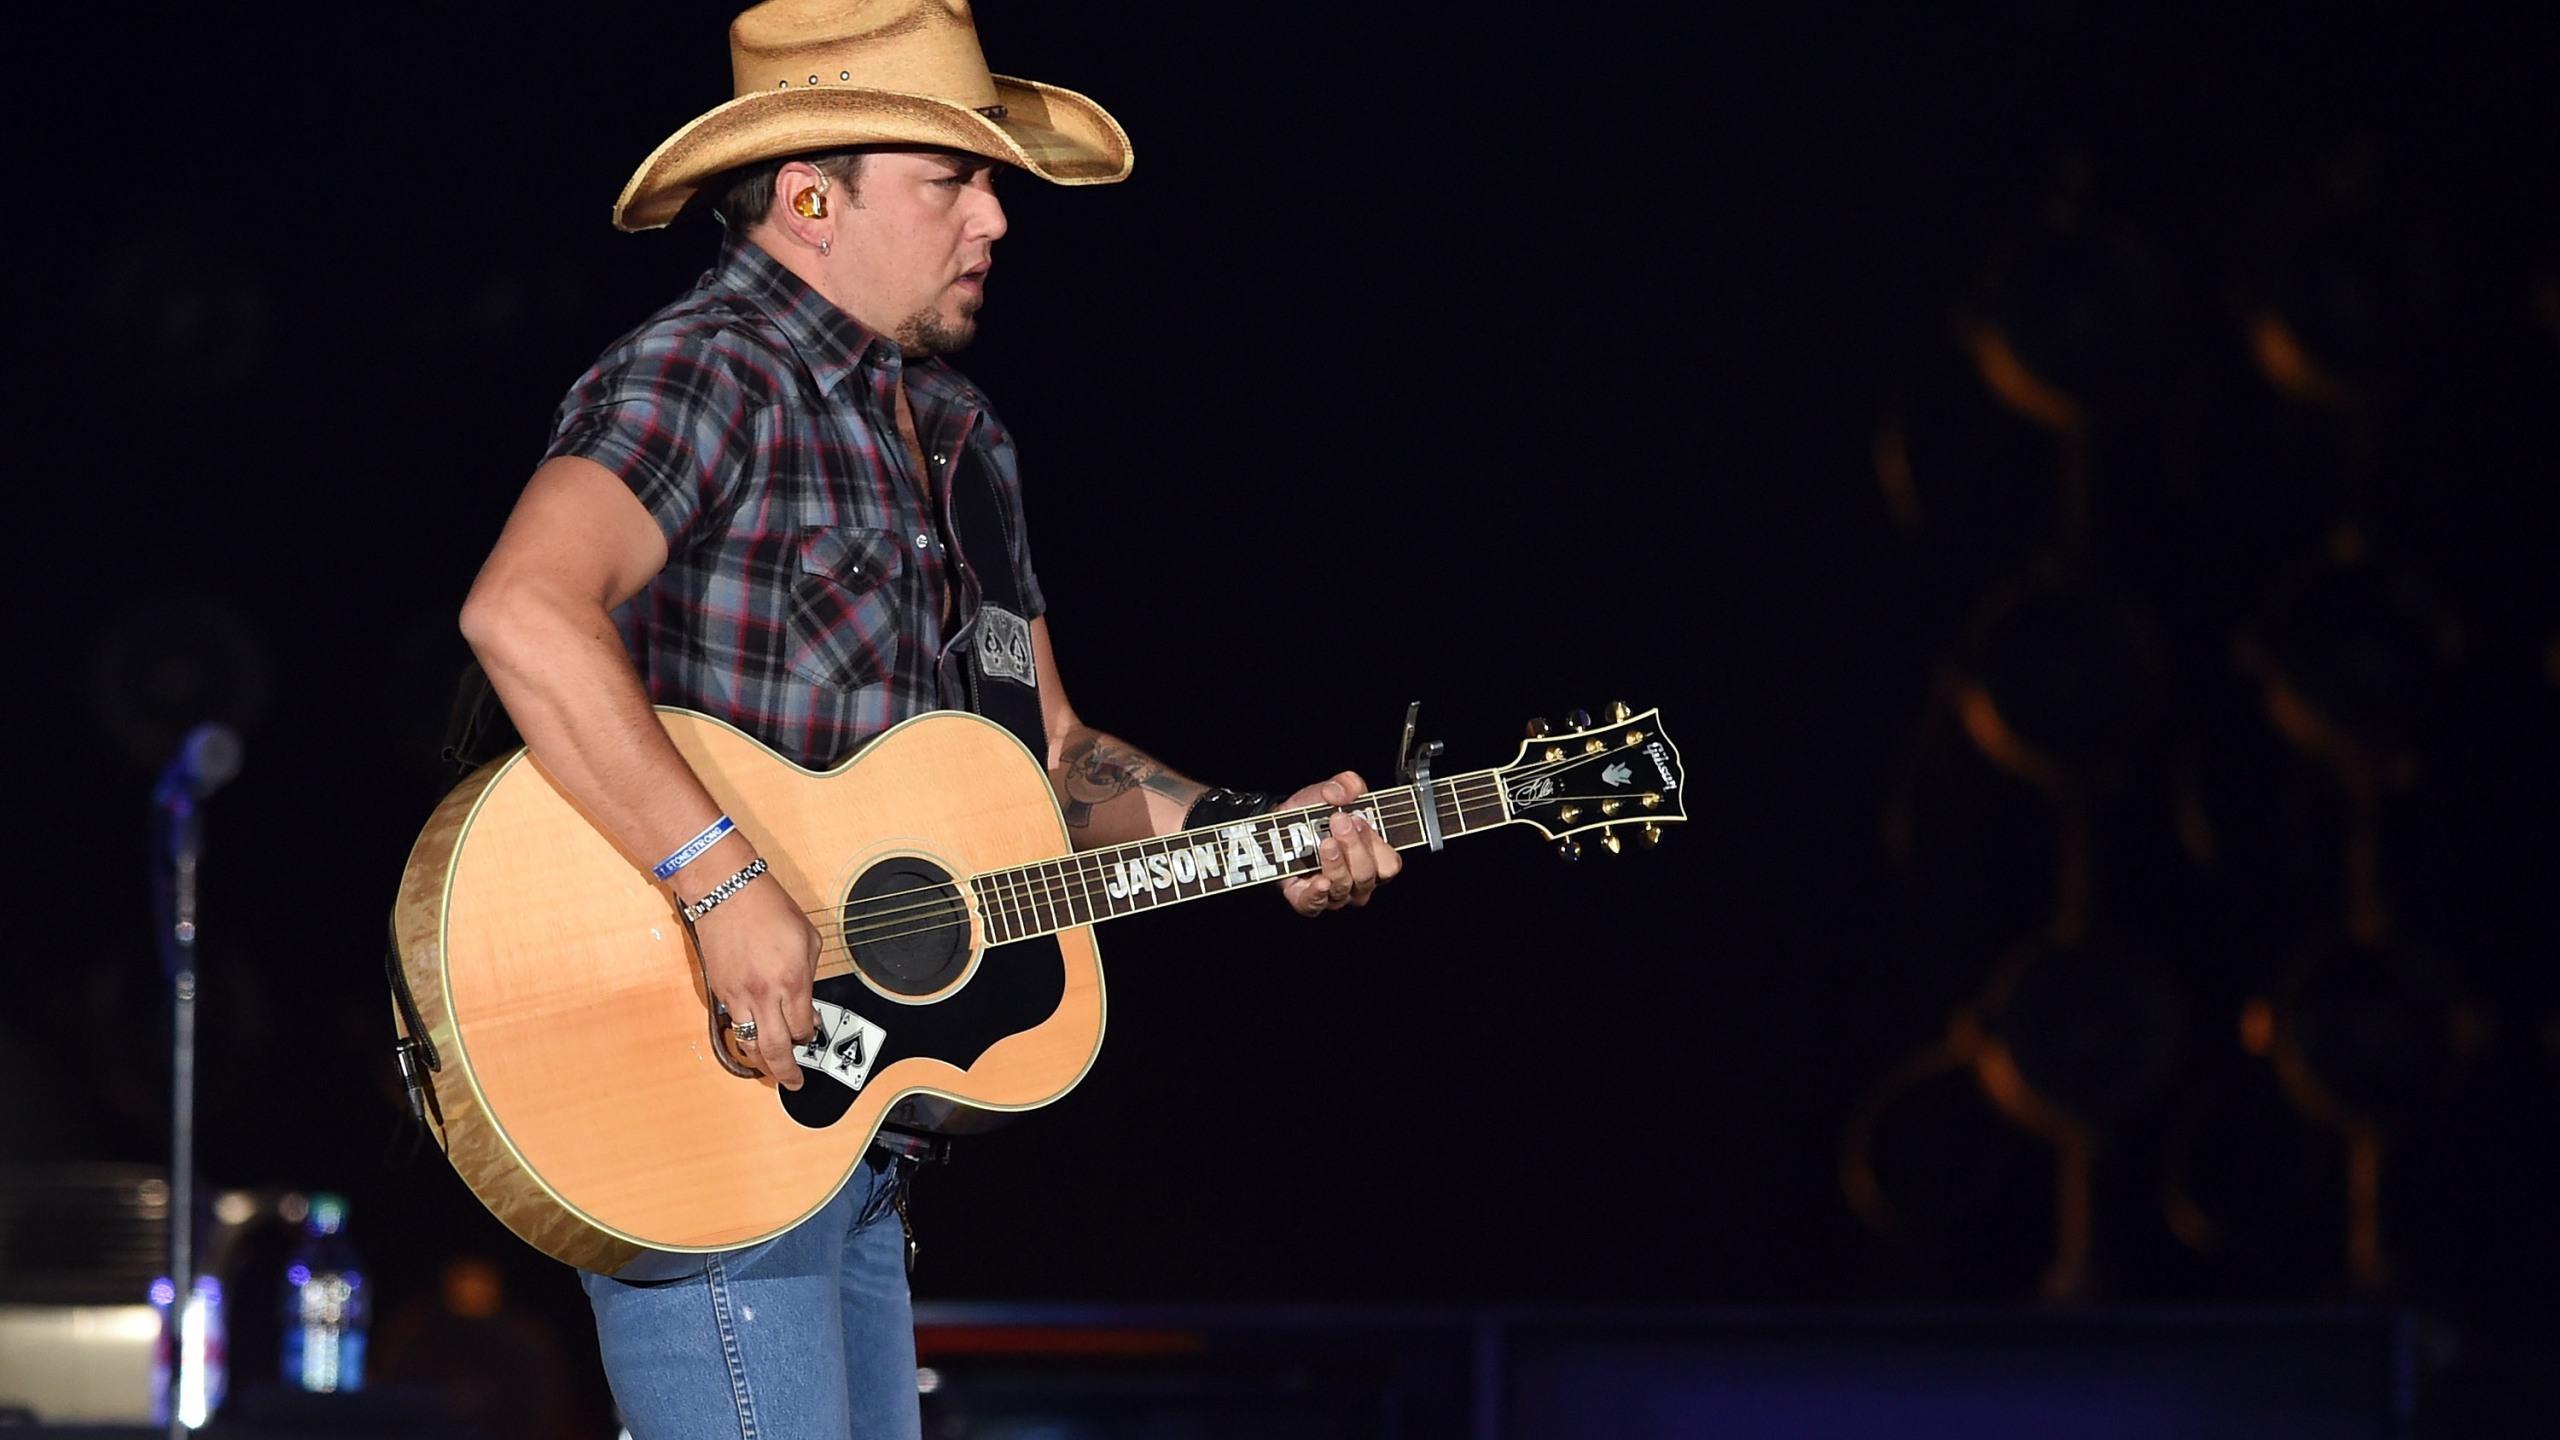 Recording artist Jason Aldean performs during the Route 91 Harvest country music festival at the MGM Resorts Village on October 5, 2014 in Las Vegas, Nevada. (Credit: Ethan Miller/Getty Images)